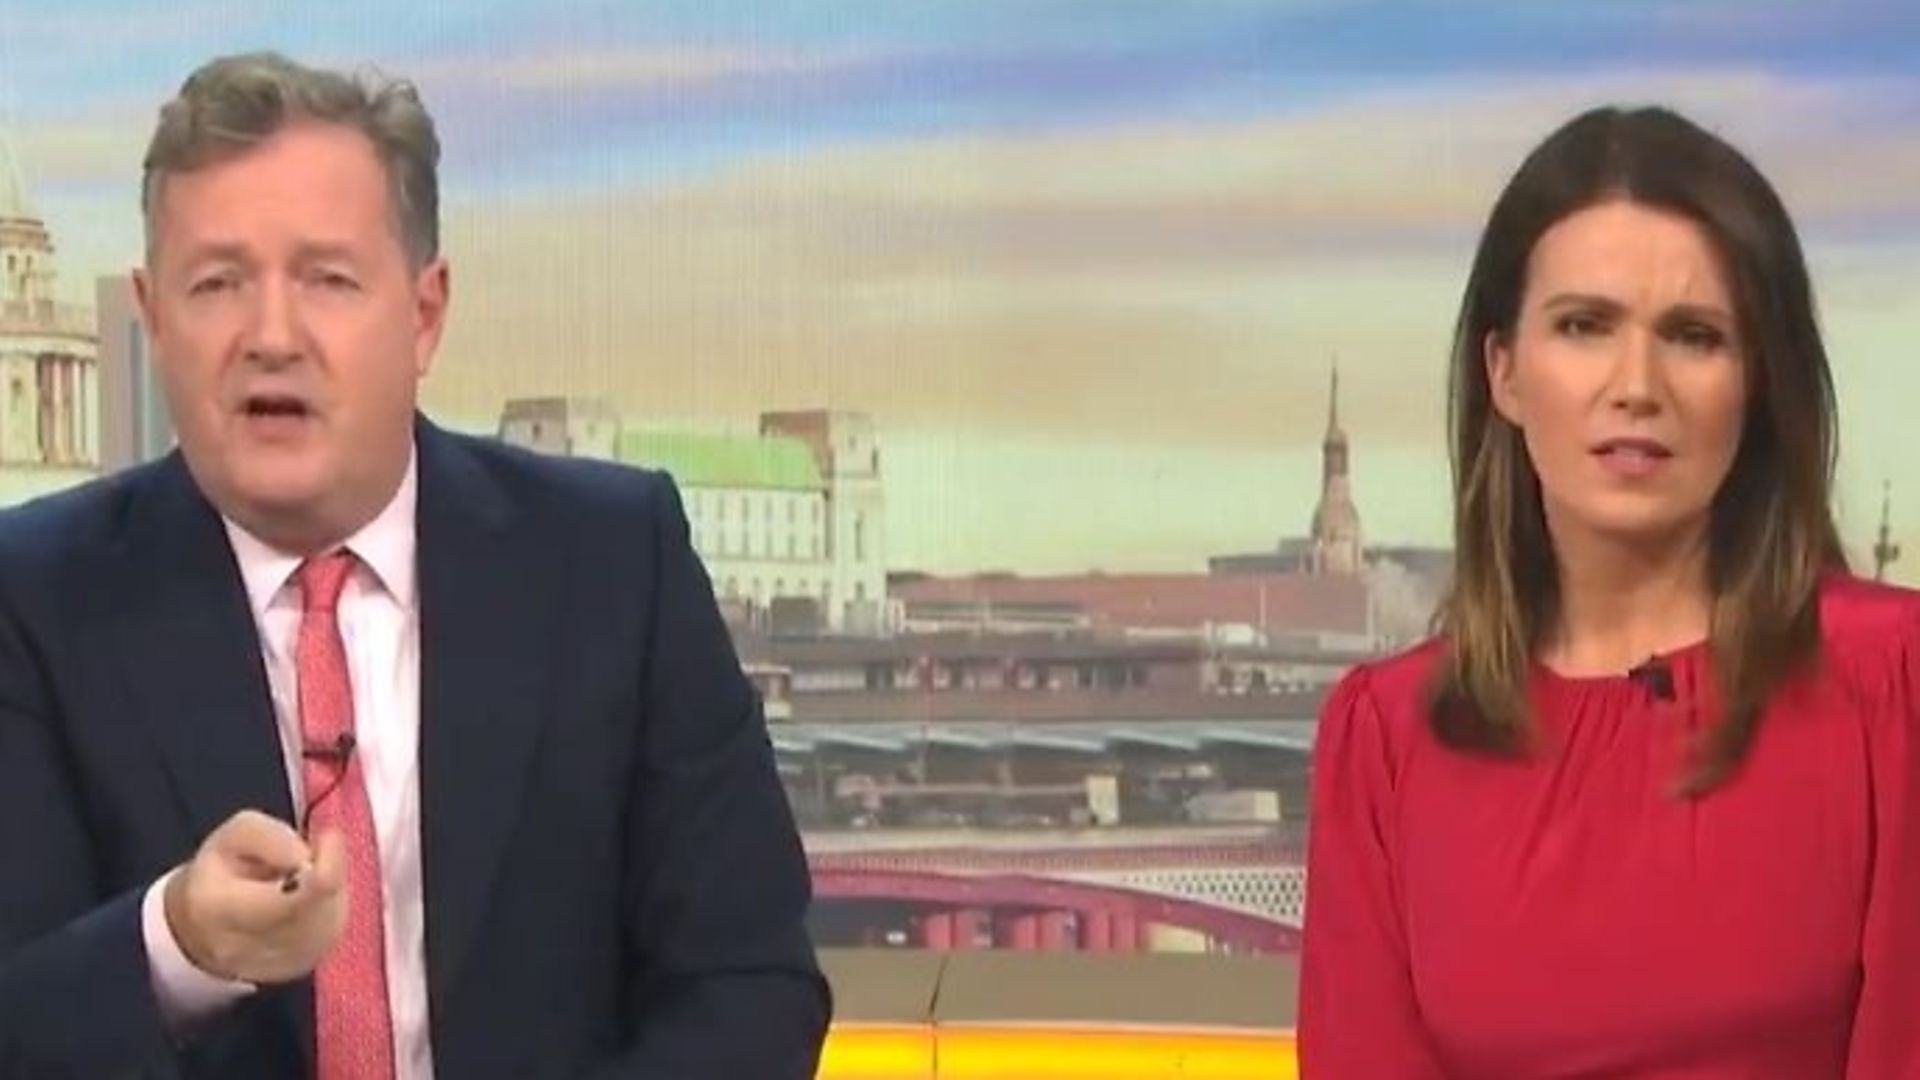 Piers Morgan and fellow co-host Susanna Reid on Good Morning Britain - Credit: Twitter